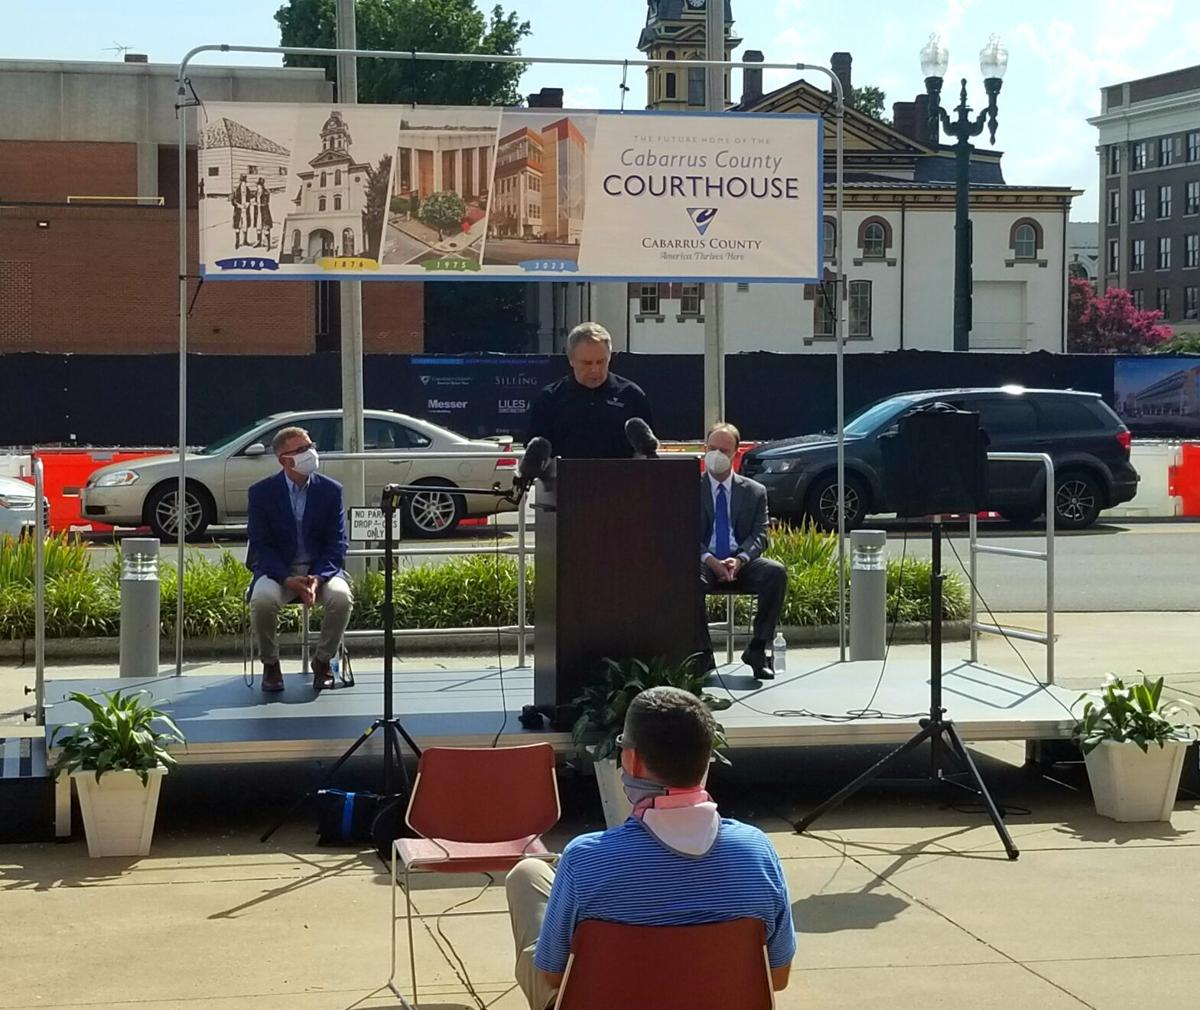 Groundbreaking ceremony for the courthouse